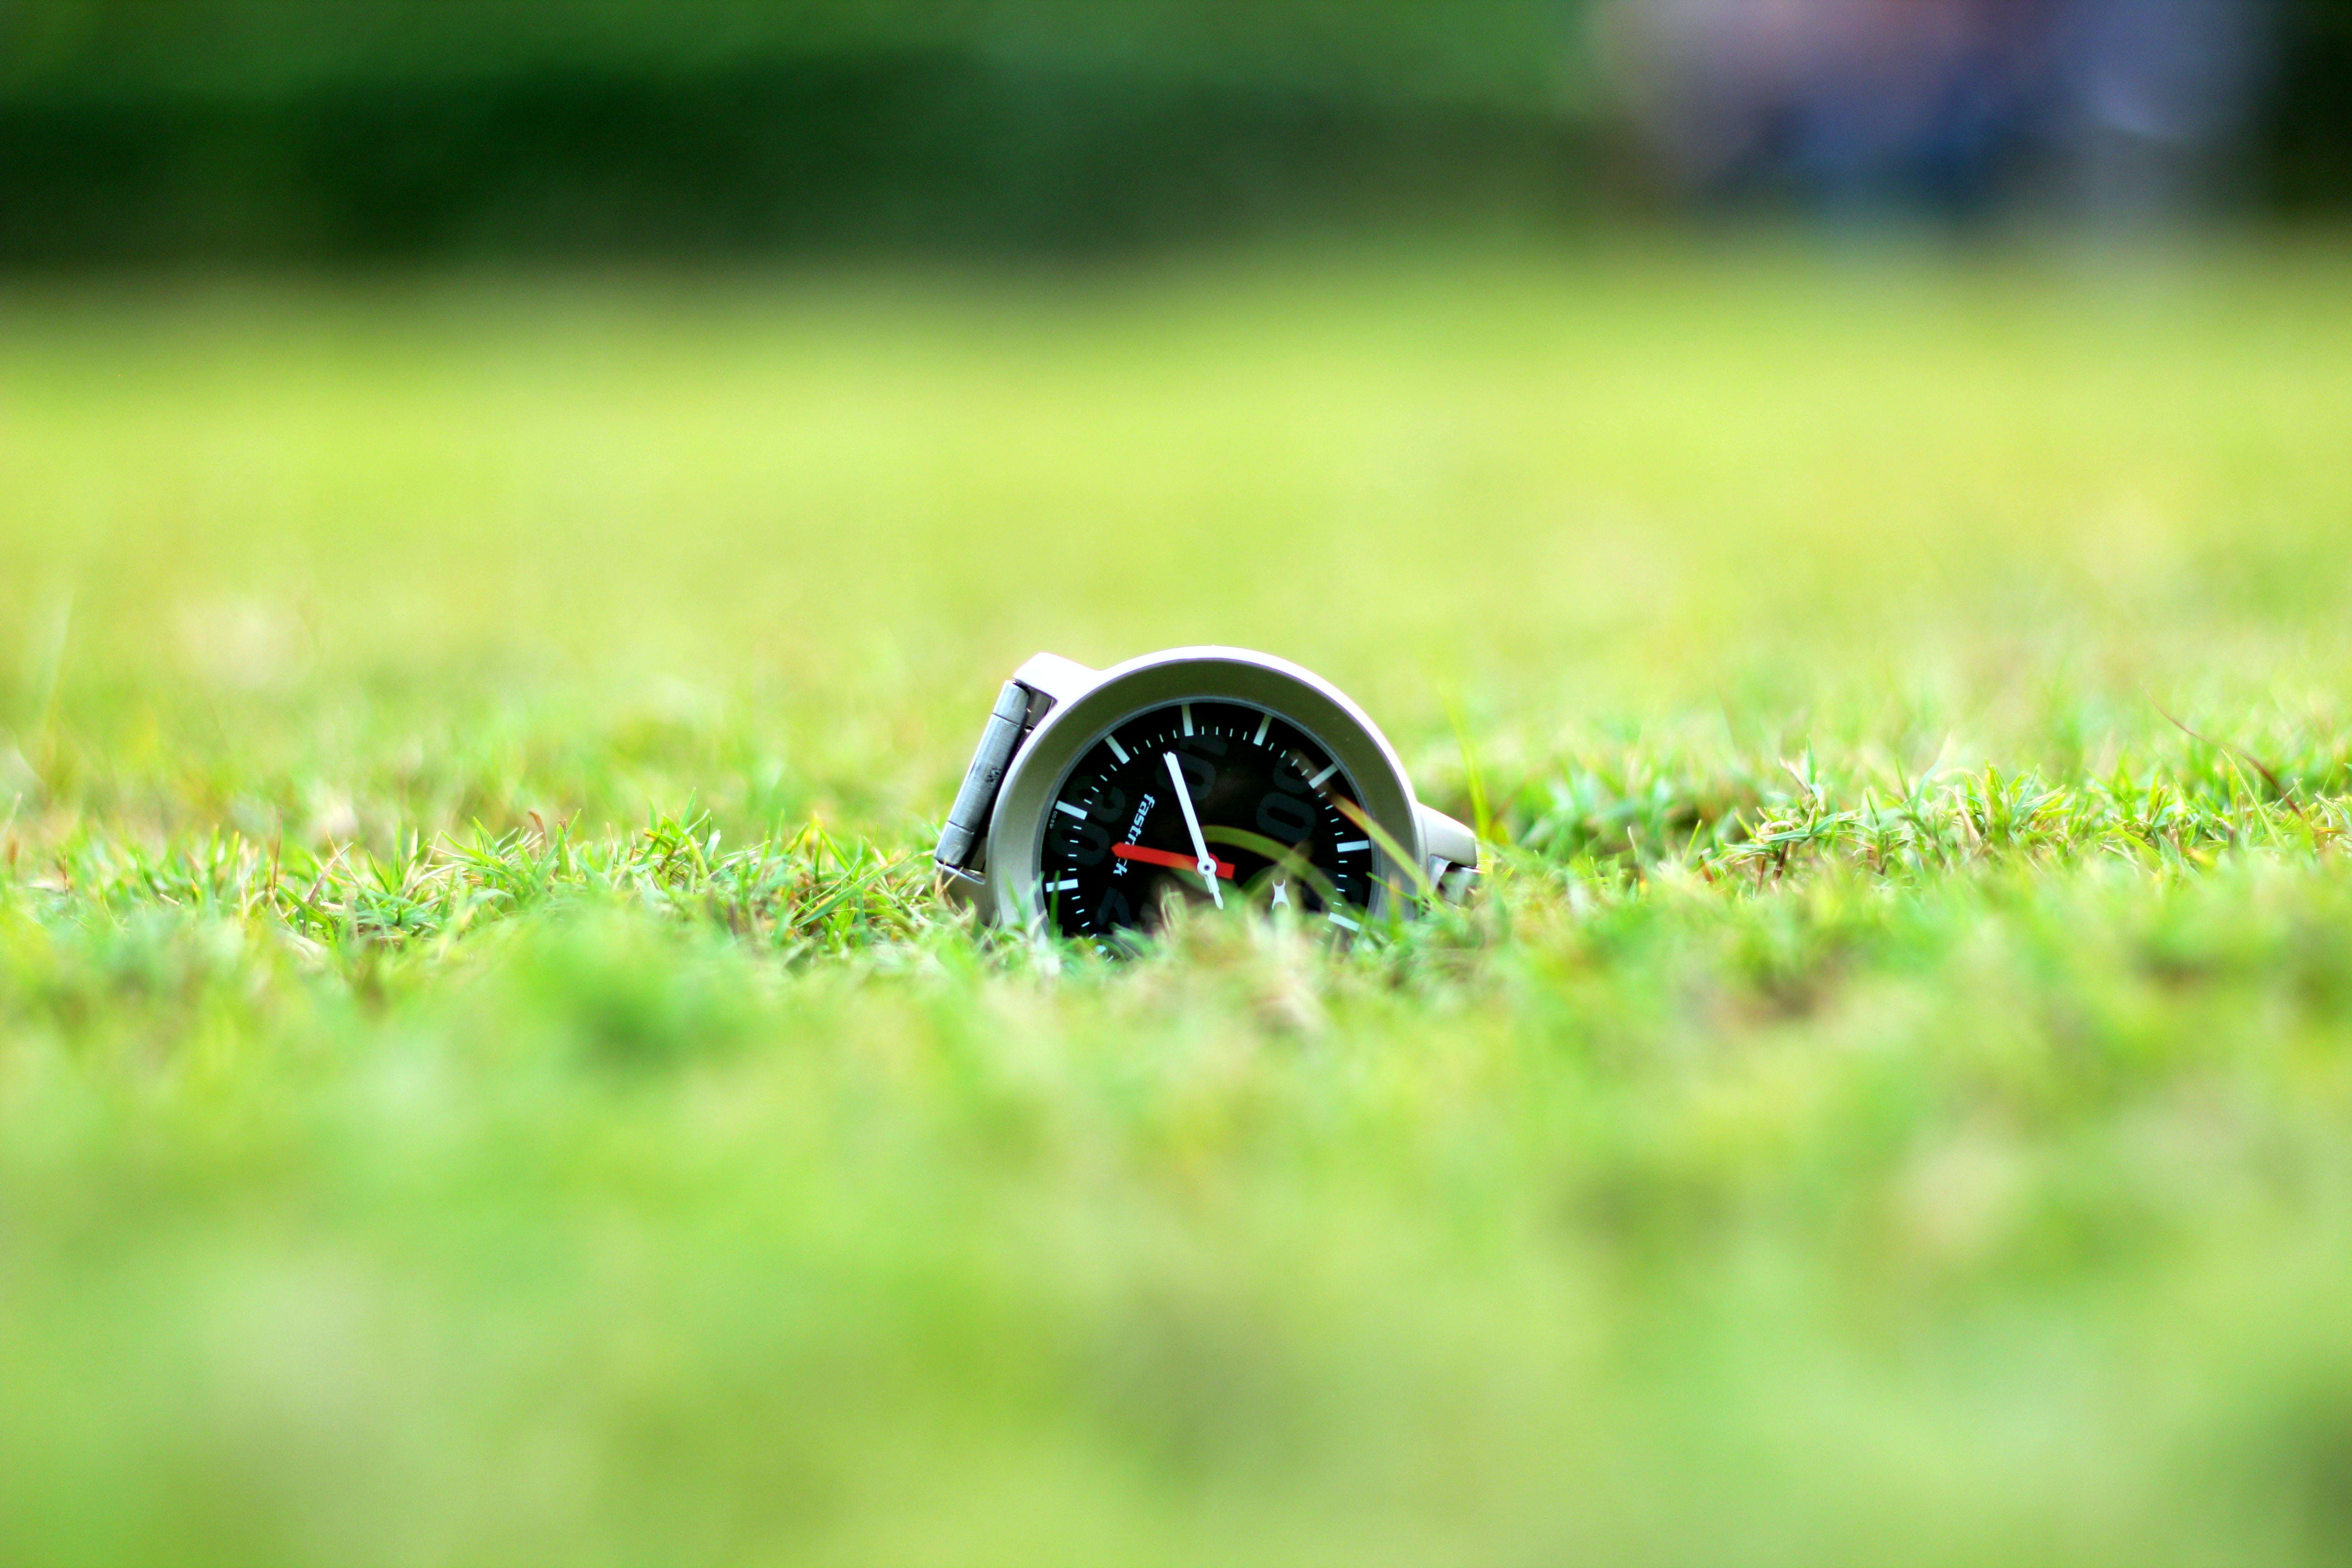 Round Grey And Black Analog Watch On Green Grass